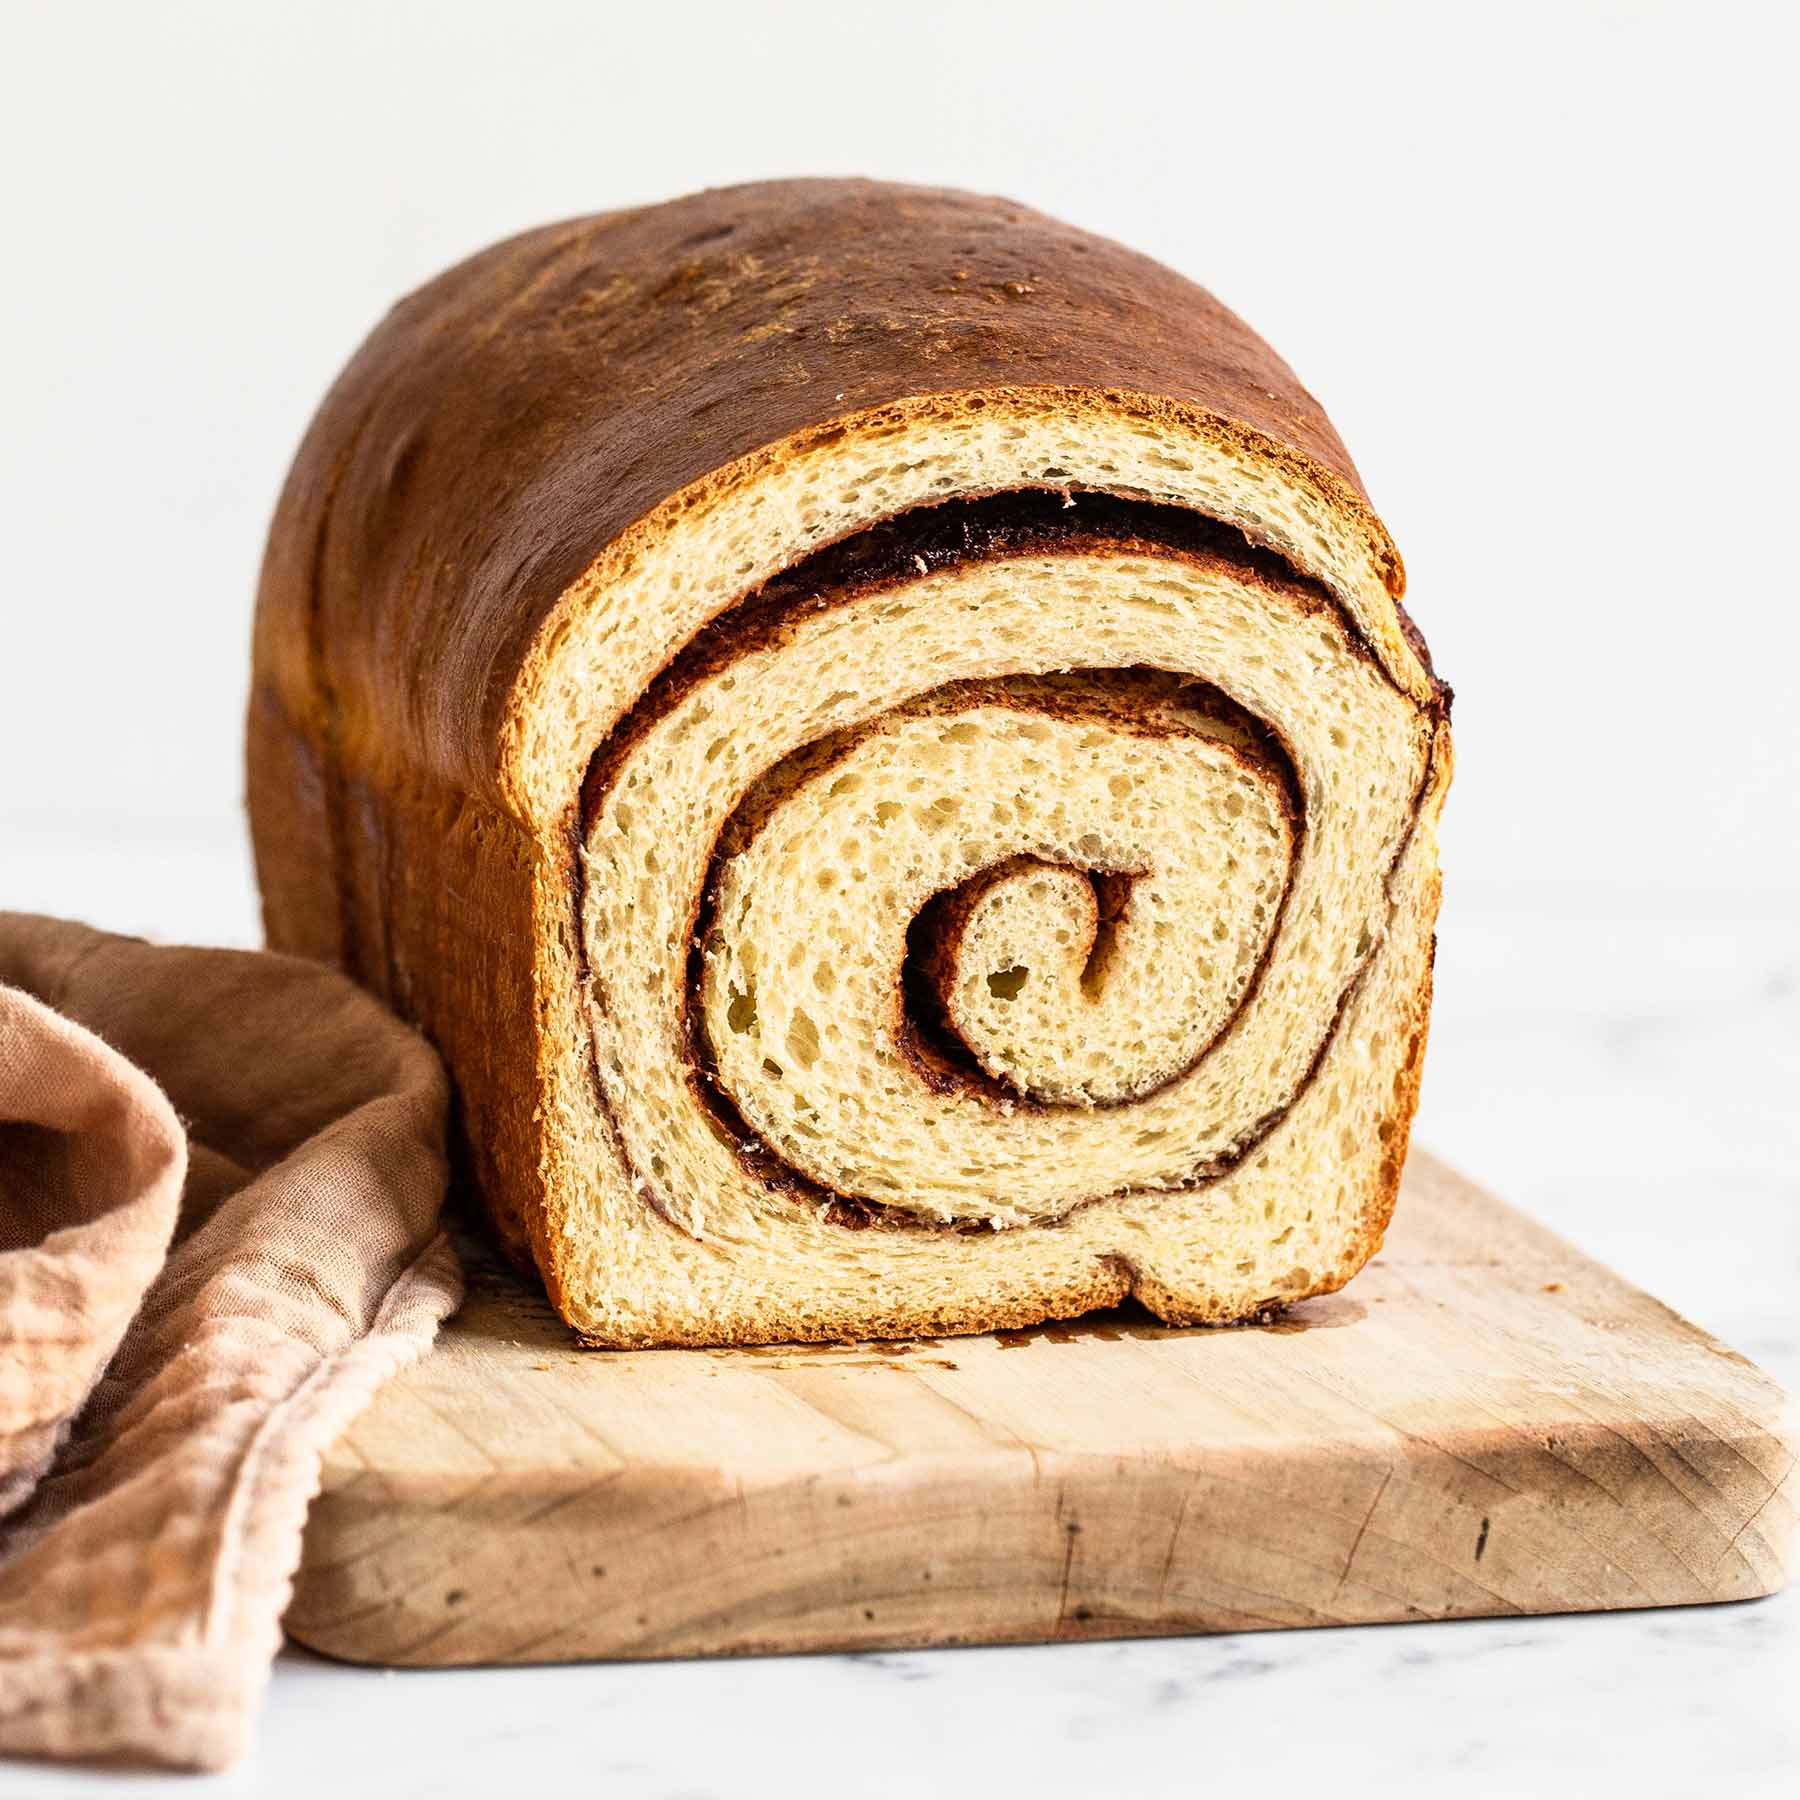 Cinnamon Swirl Bread Handle The Heat